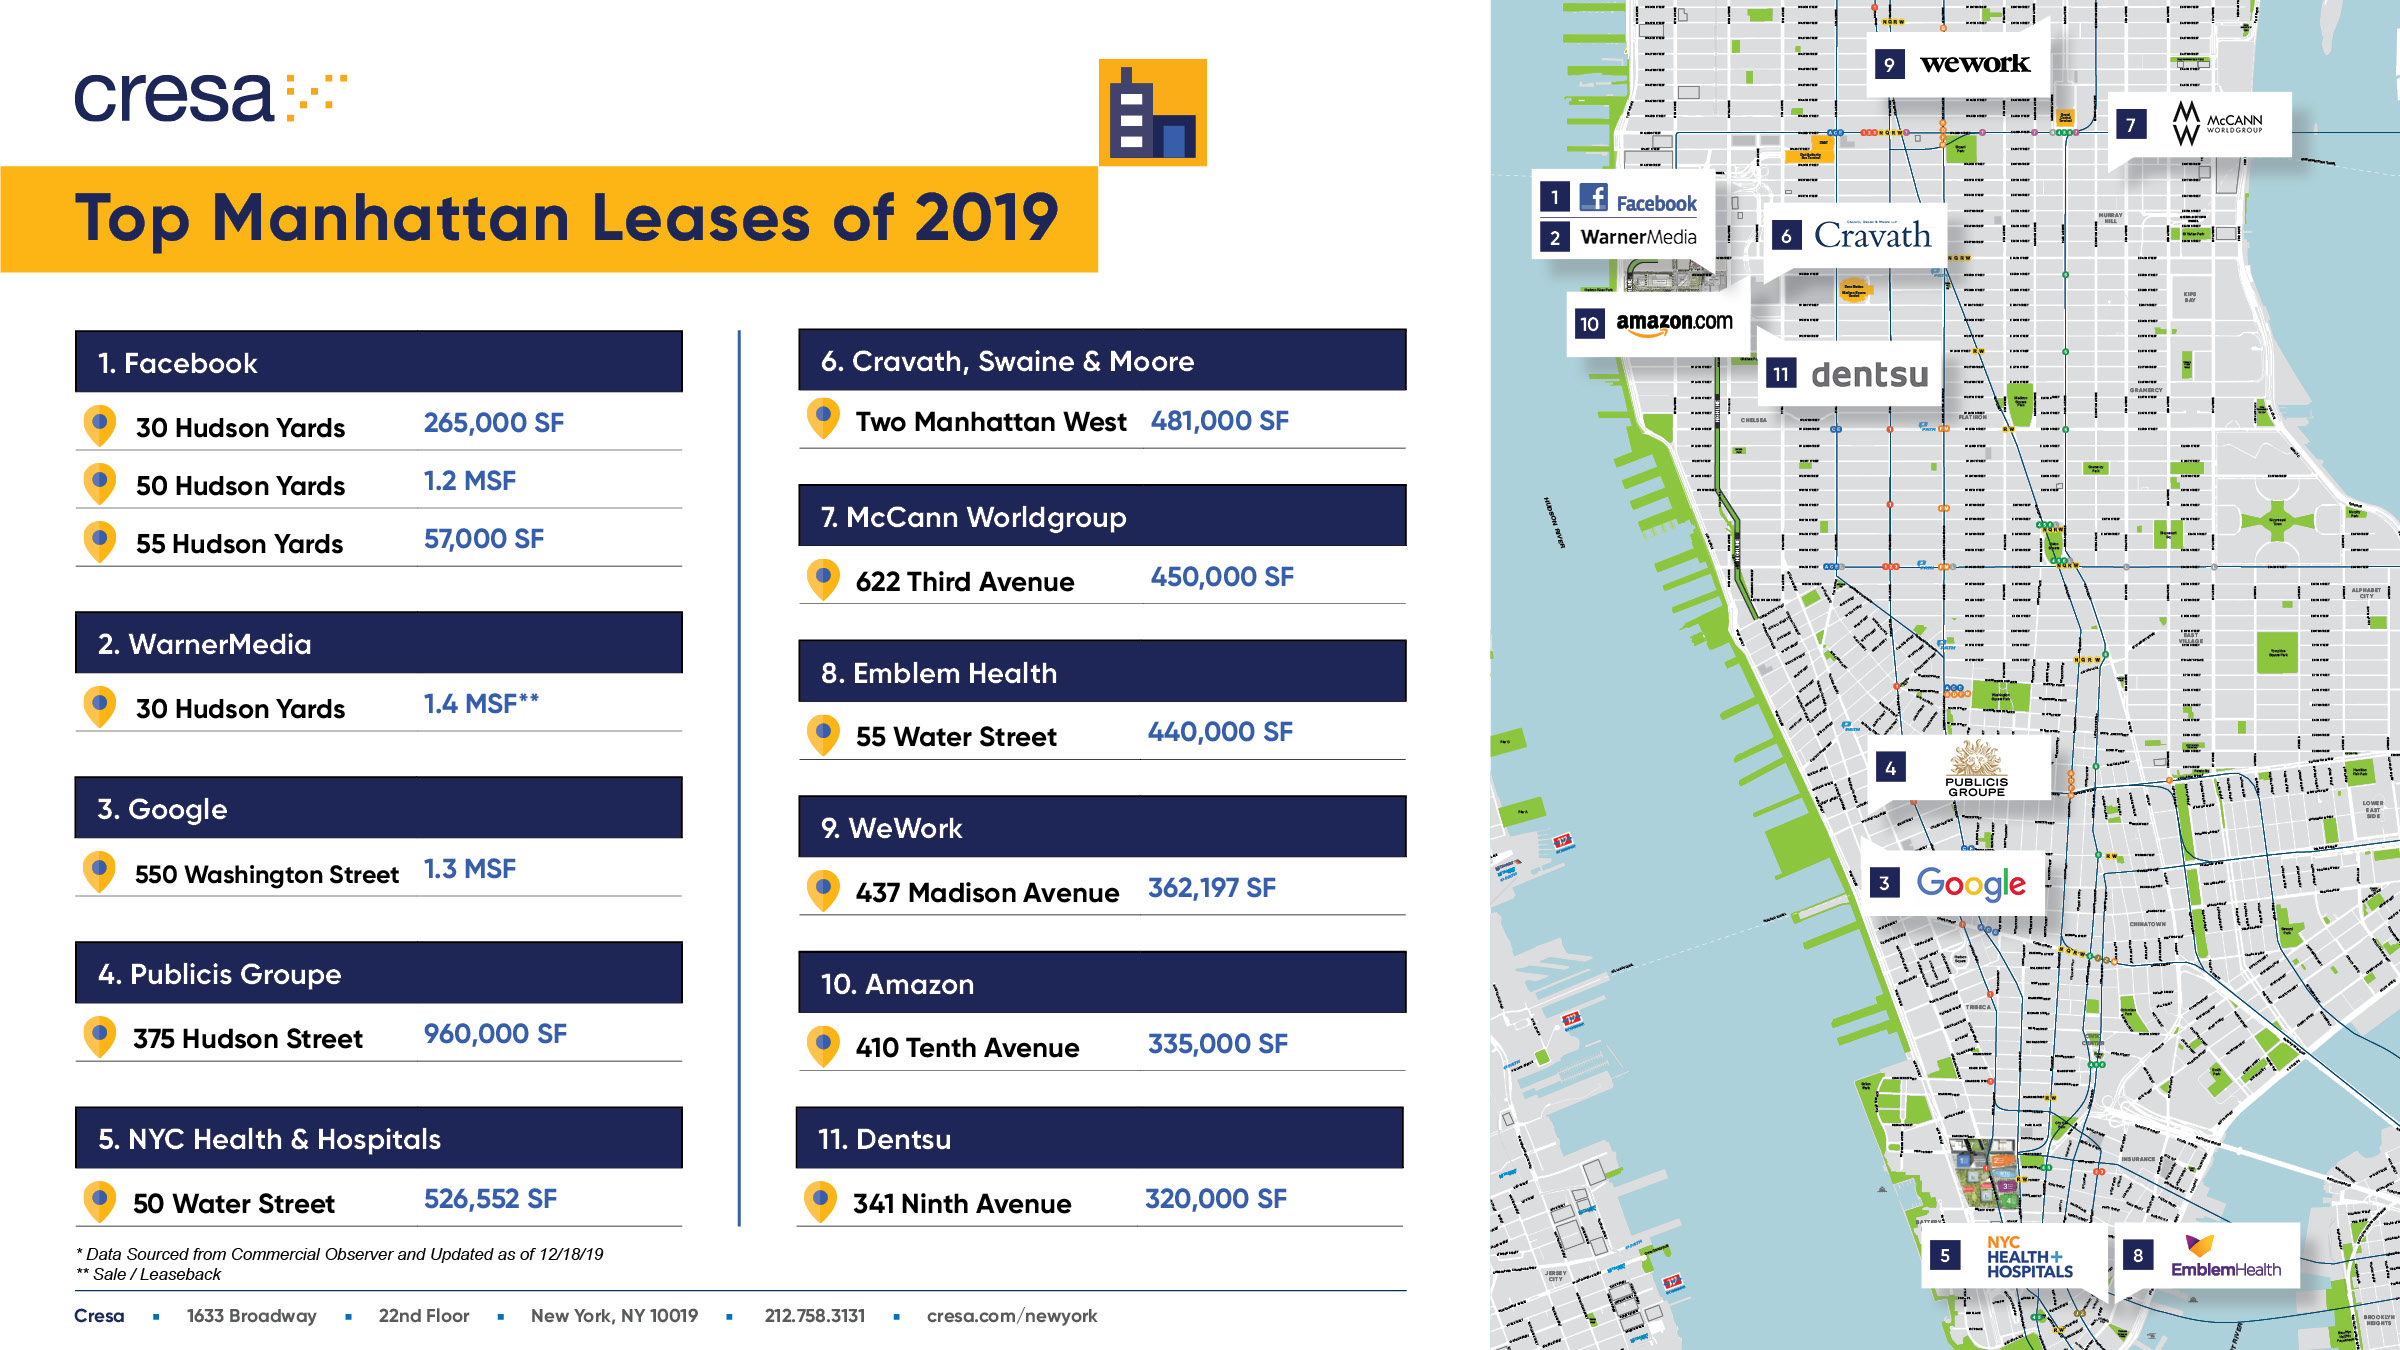 Top Manhattan Leases